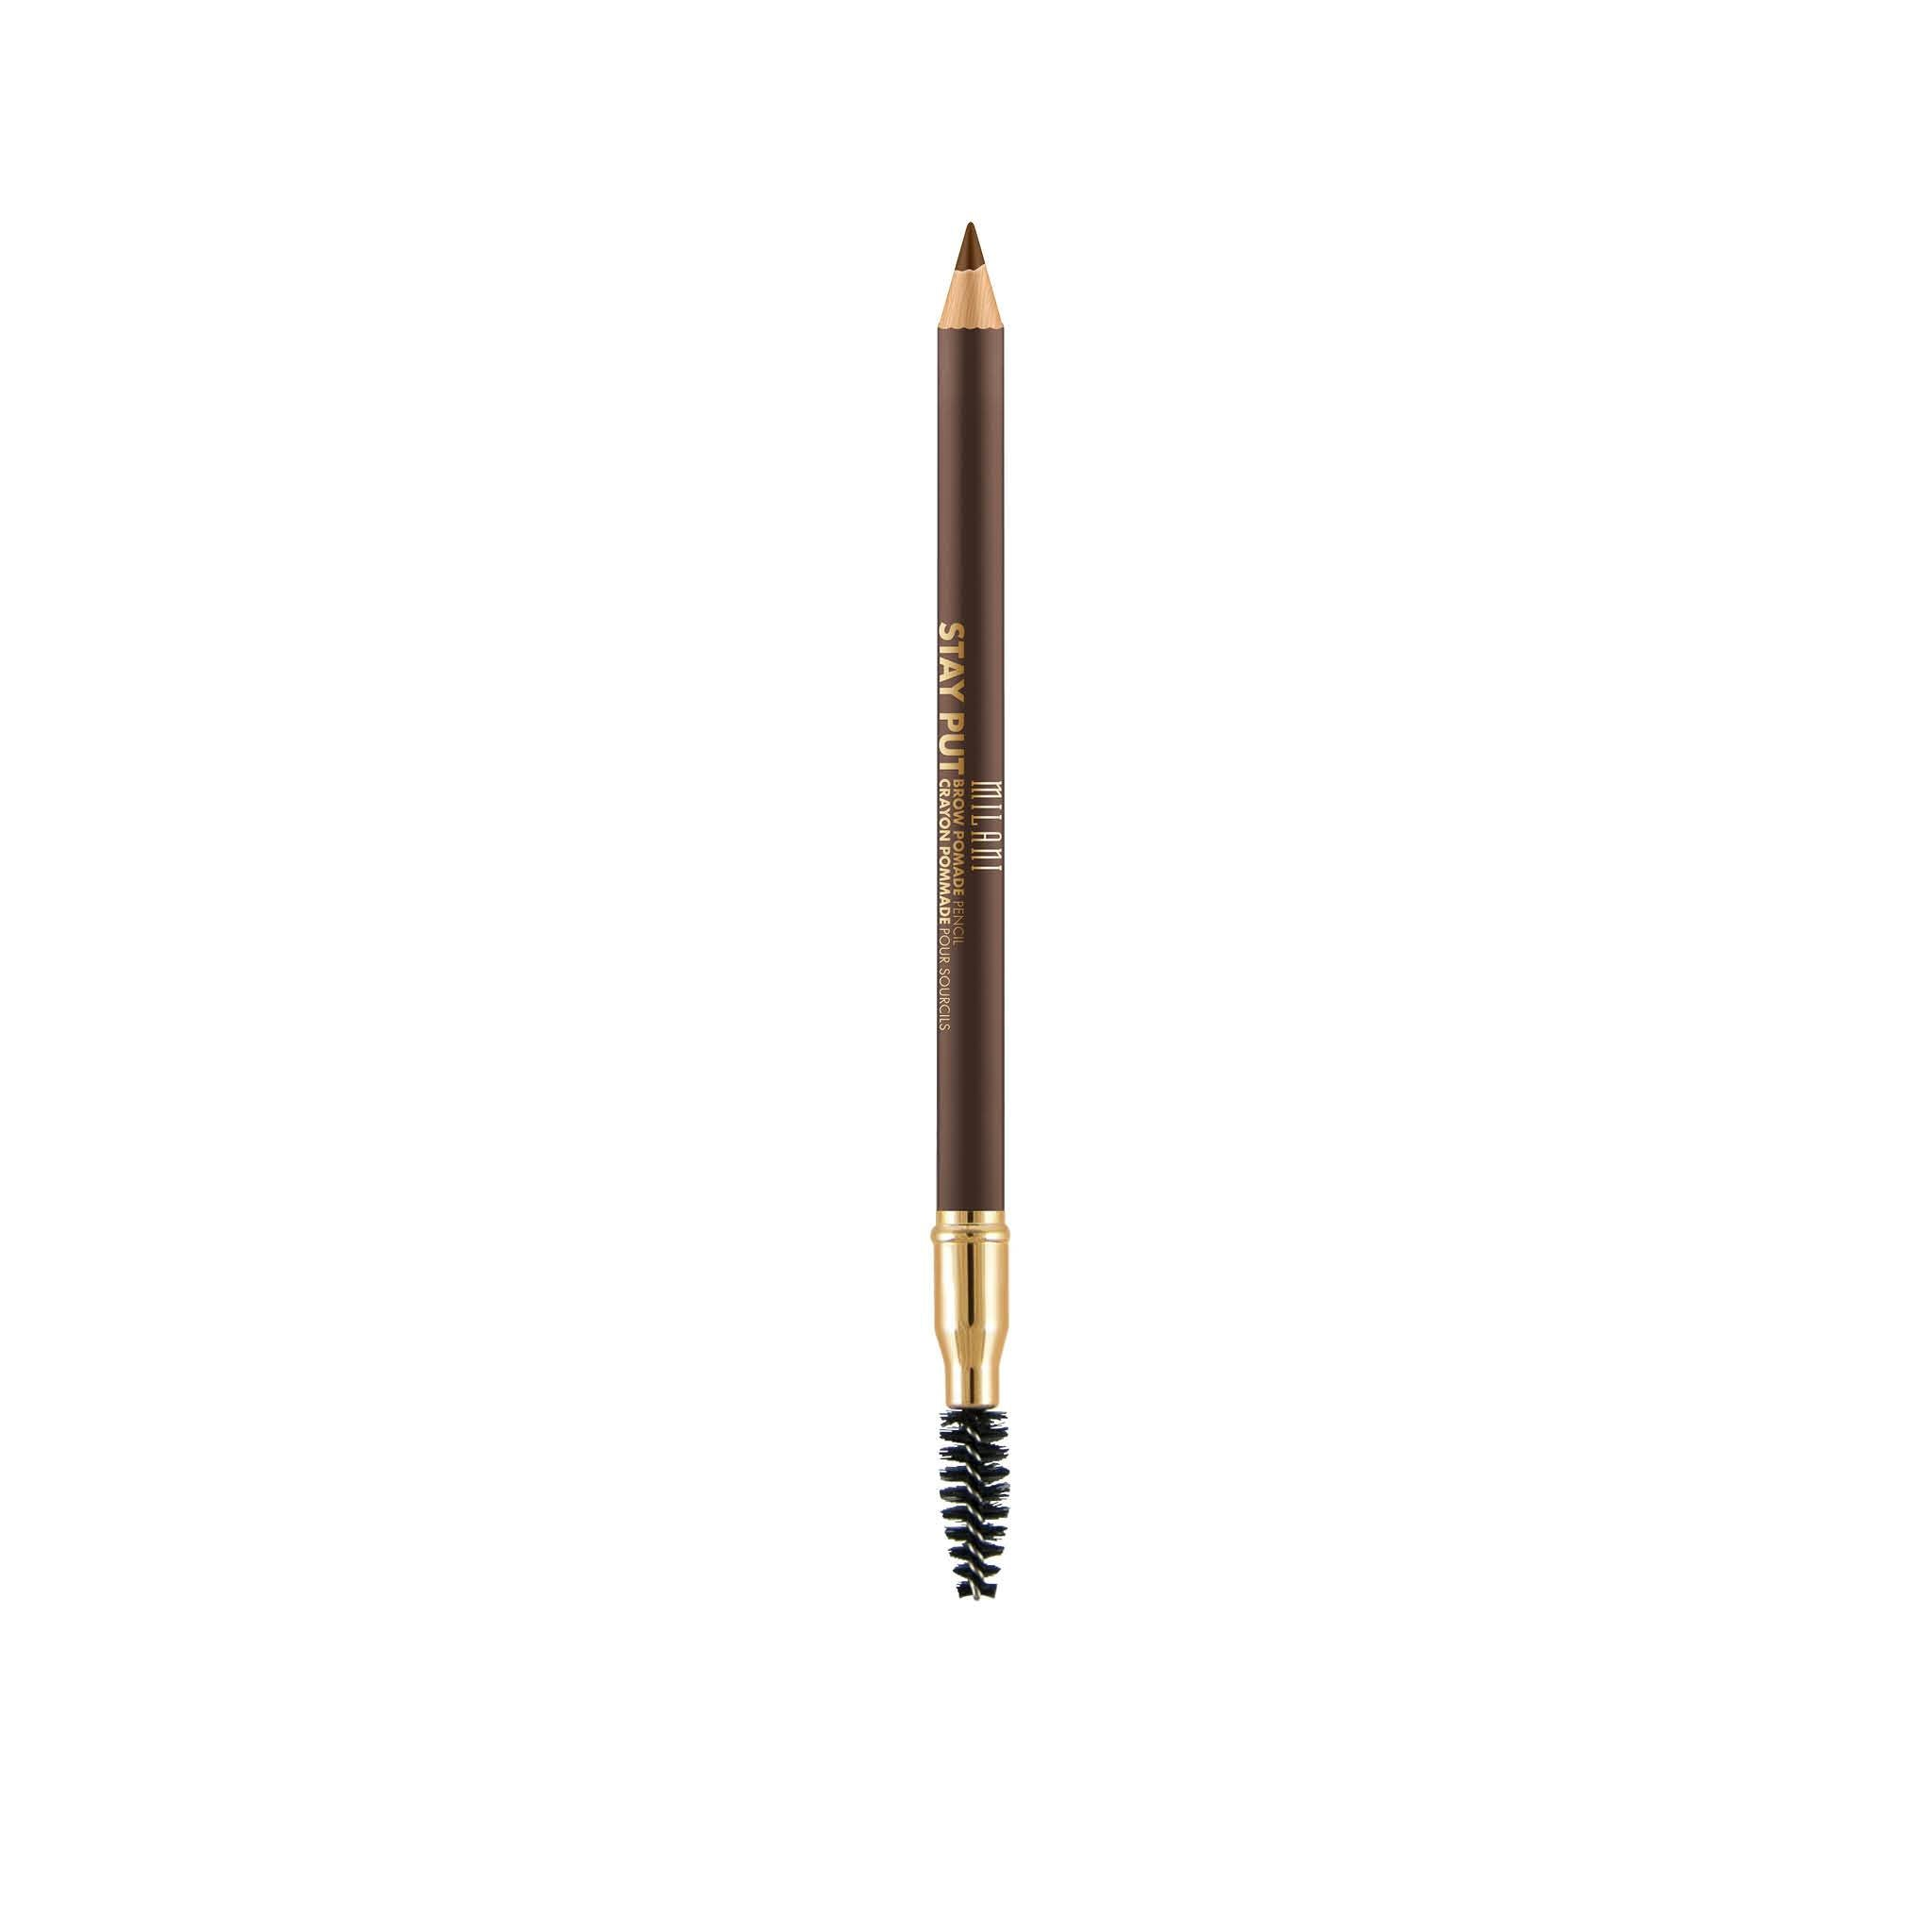 MILANI Stay Put Brow Pomade Pencil | HODIVA SHOP